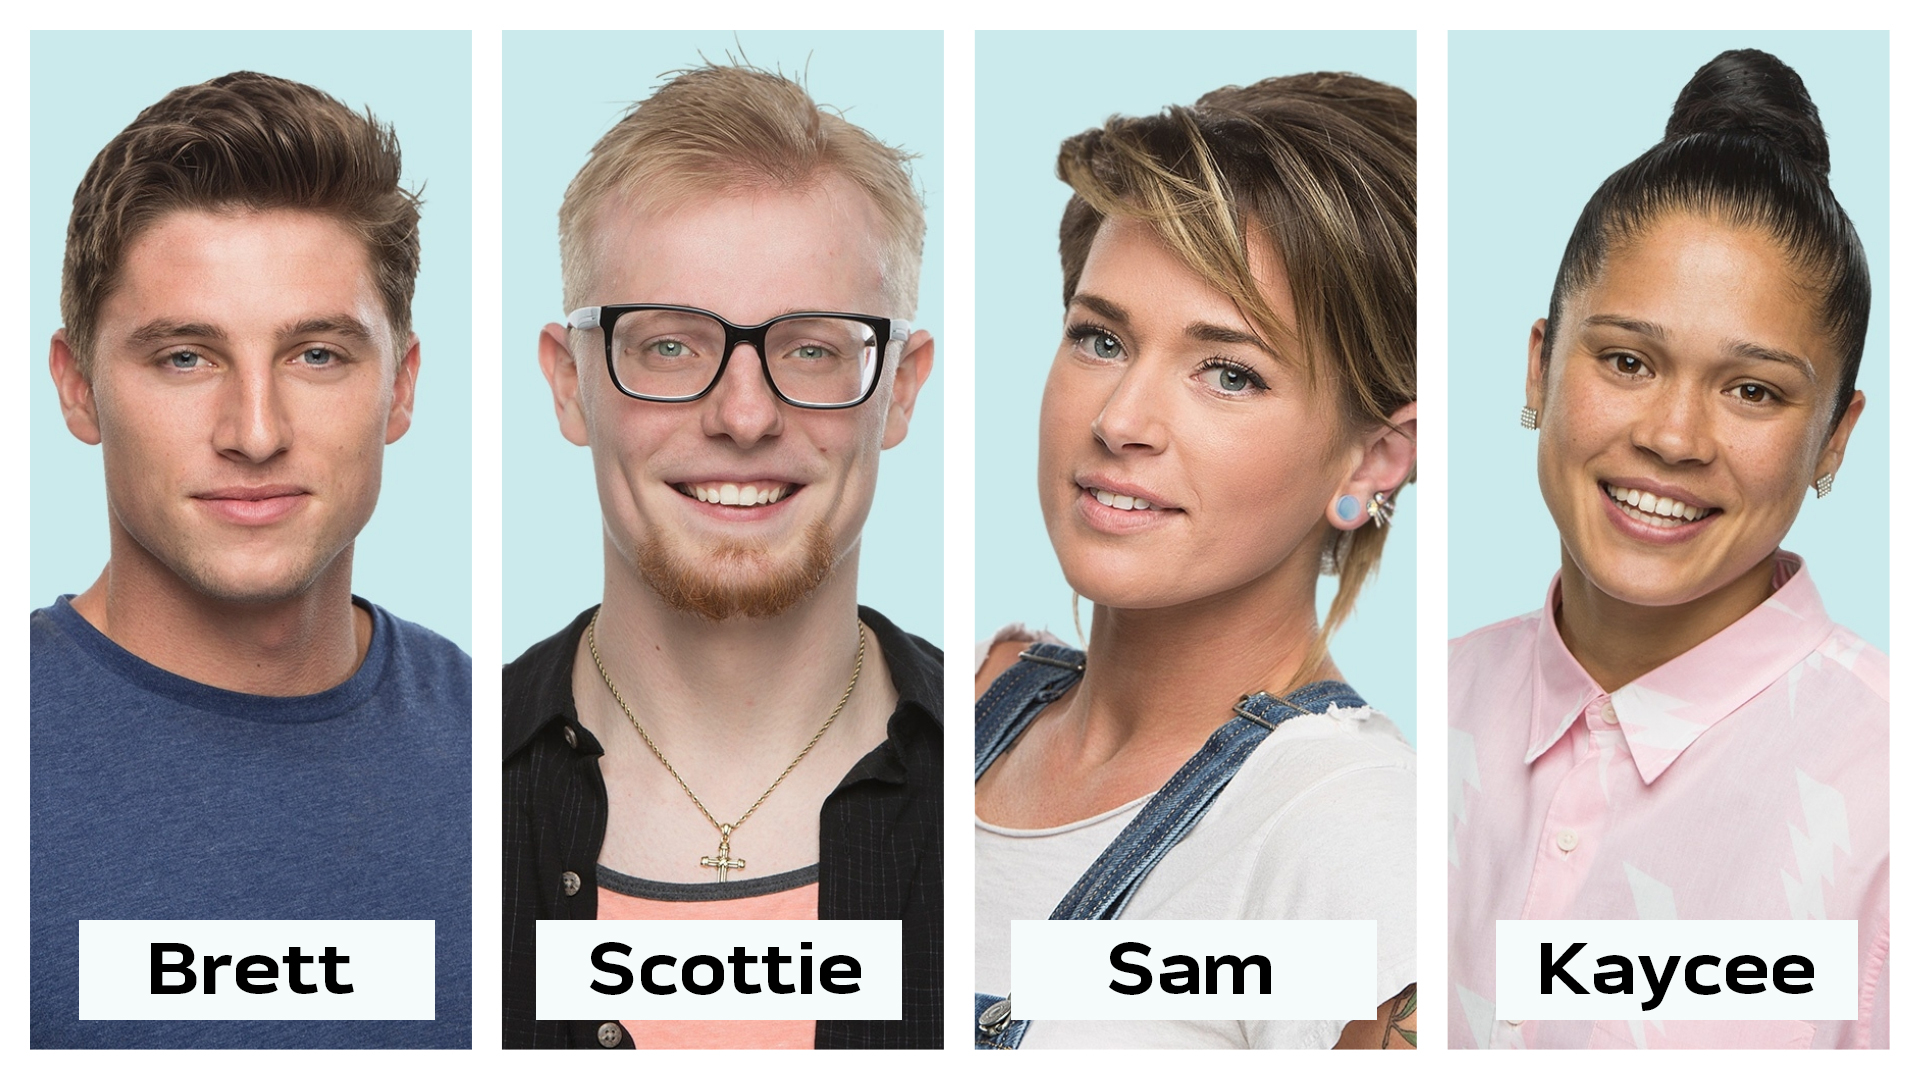 Who was the second Houseguest eliminated in the